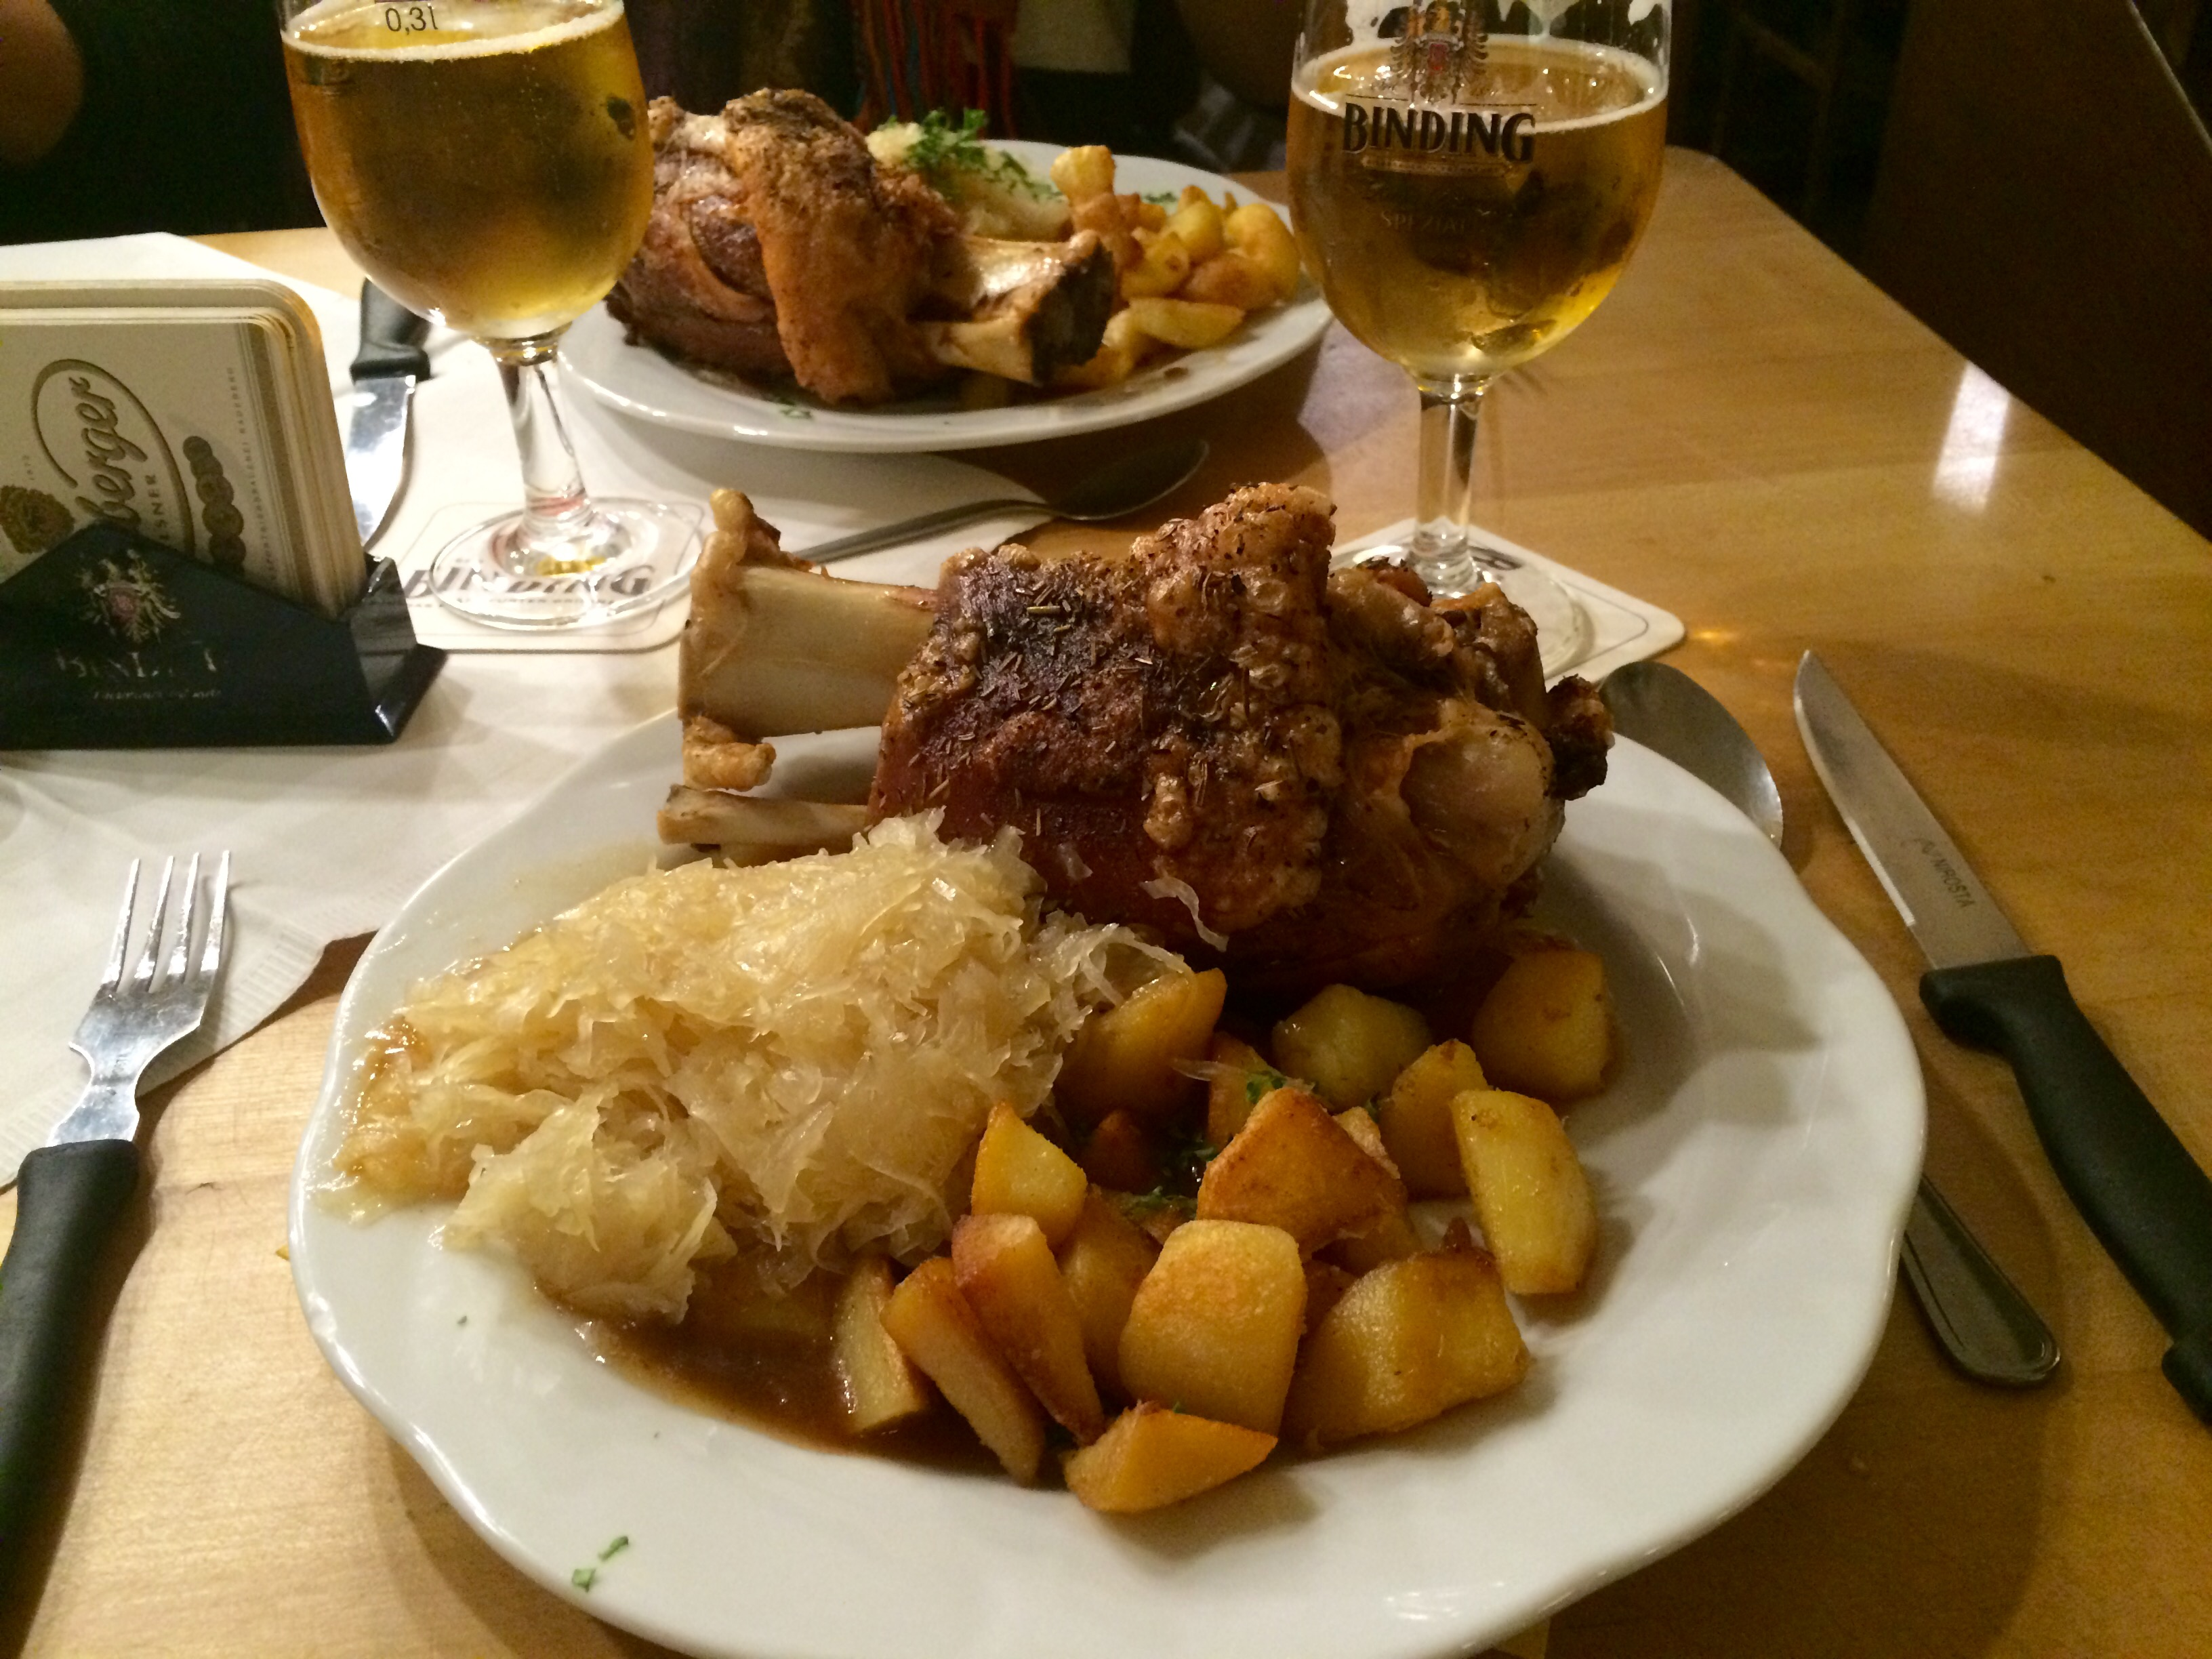 Our farewell dinner in Germany. Roasted pork knuckle and sauerkraut.